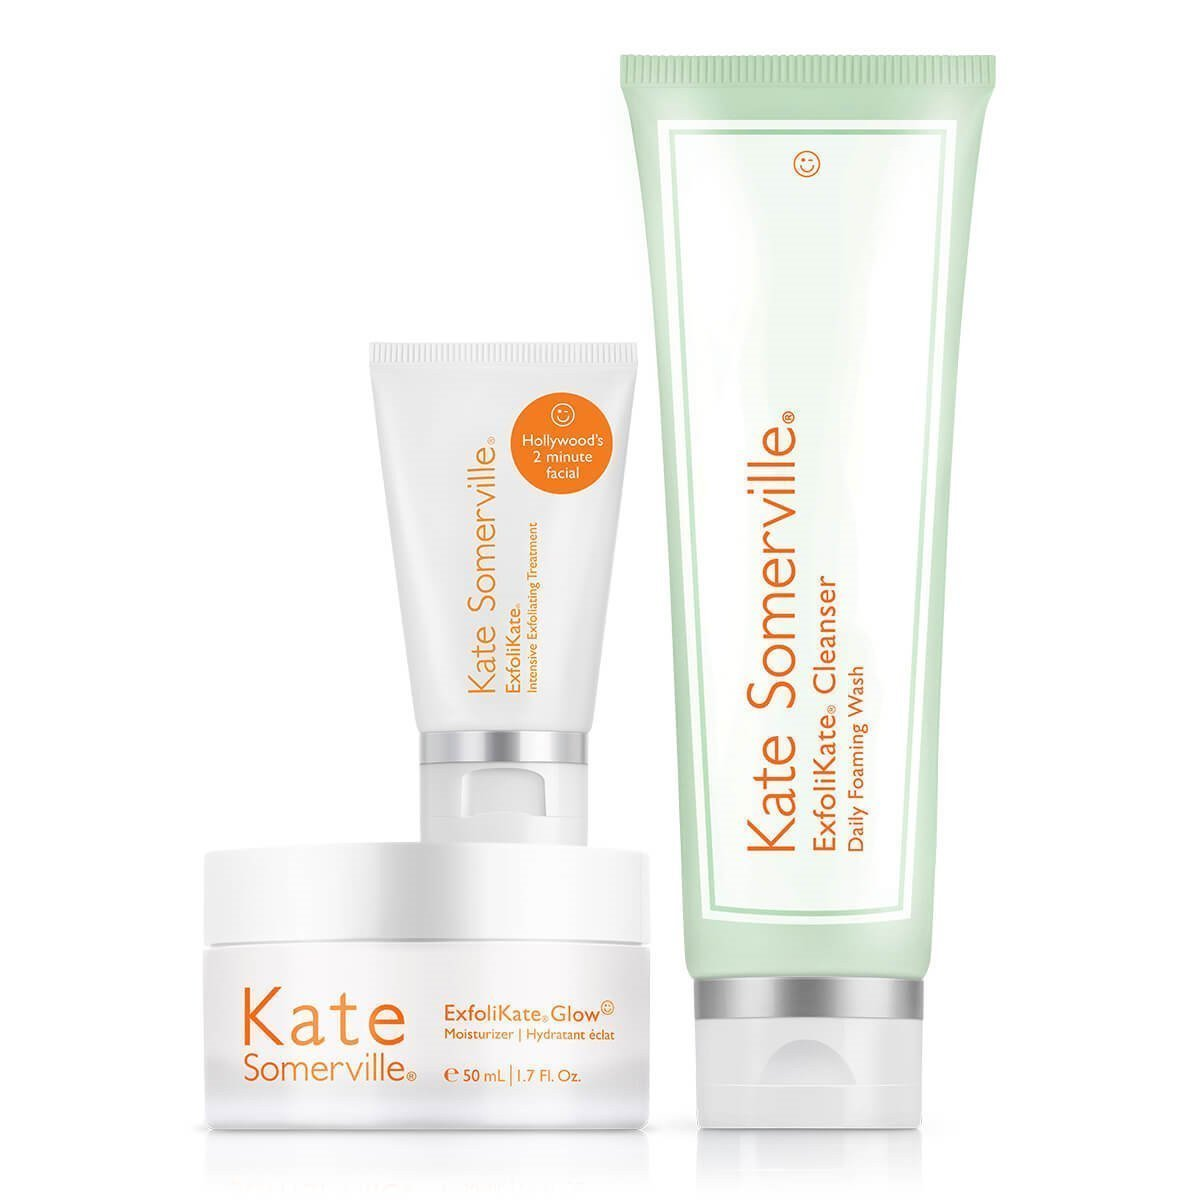 Kate Somerville ExfoliKate Glow Set